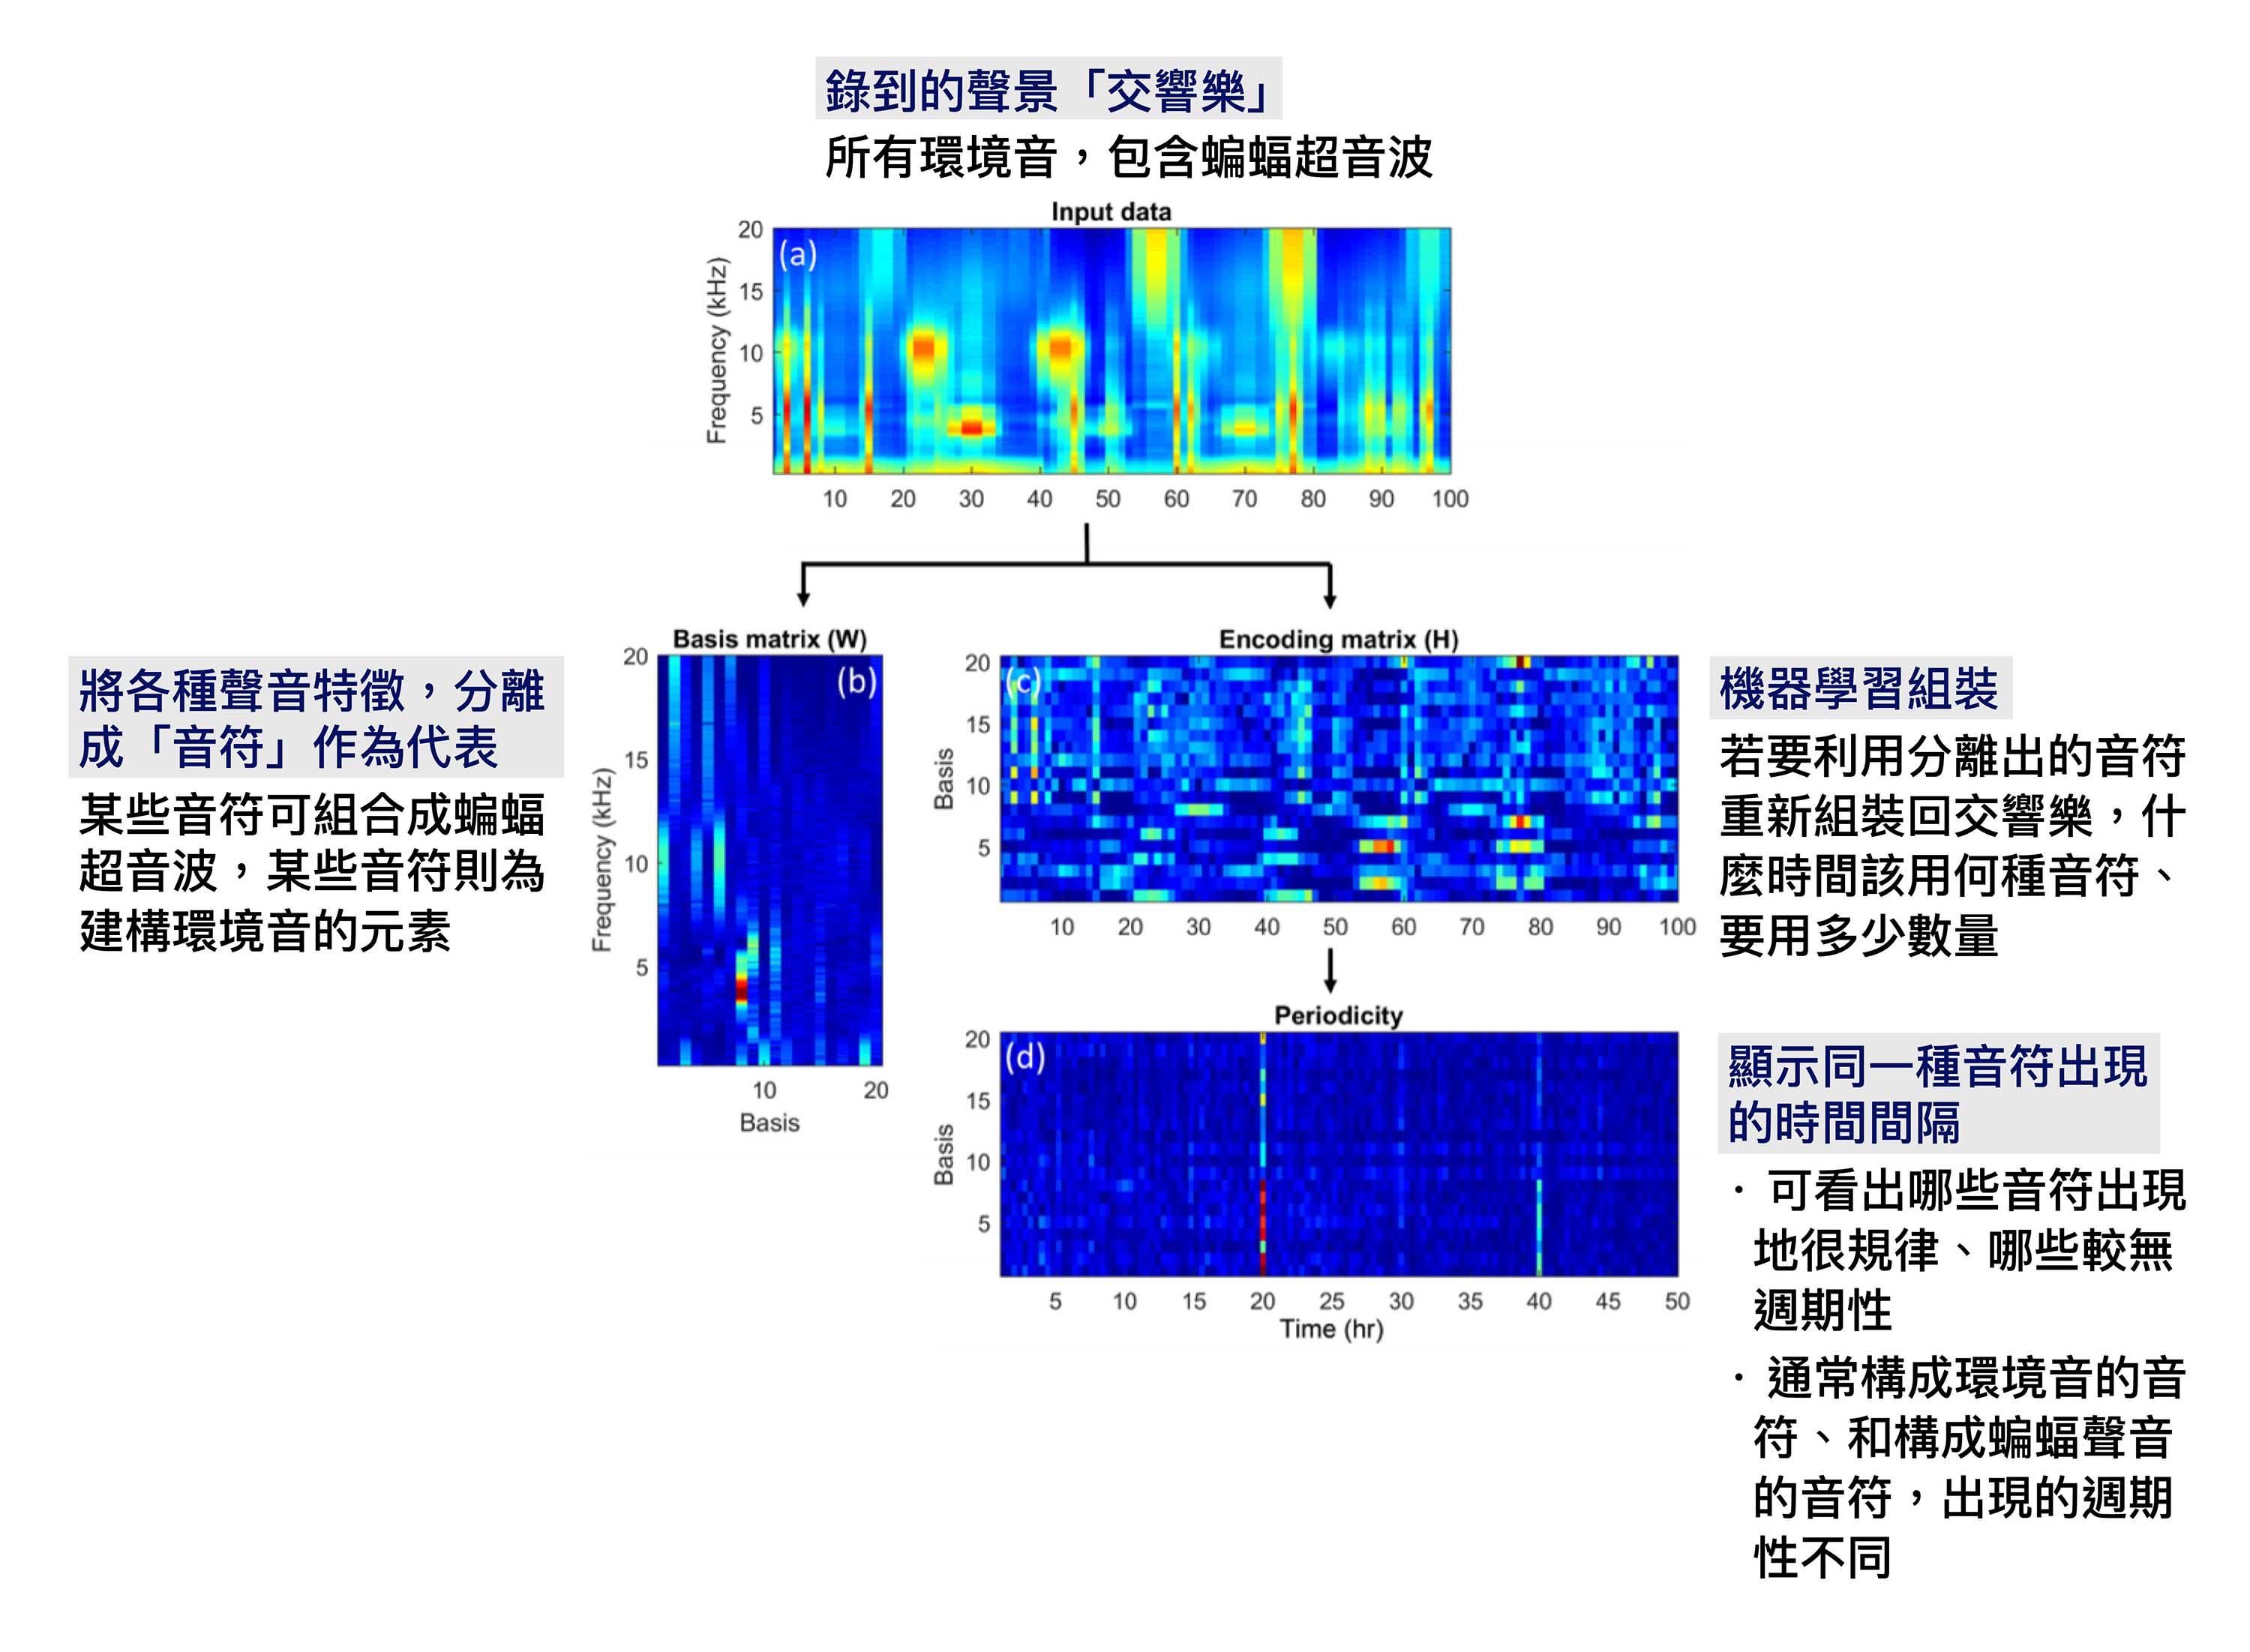 "PC-NMF 技術、與聲音頻譜圖示意。 圖片來源│T.-H. Lin, S.-H. Fang, and Y, Tsao, ""Improving Biodiversity Assessment via Unsupervised Separation of Biological Sounds from Long-duration Recordings,"" Scientific Reports, volume 7, number 4547, pages 1, July 2017. 圖說重製│林婷嫻、張語辰"